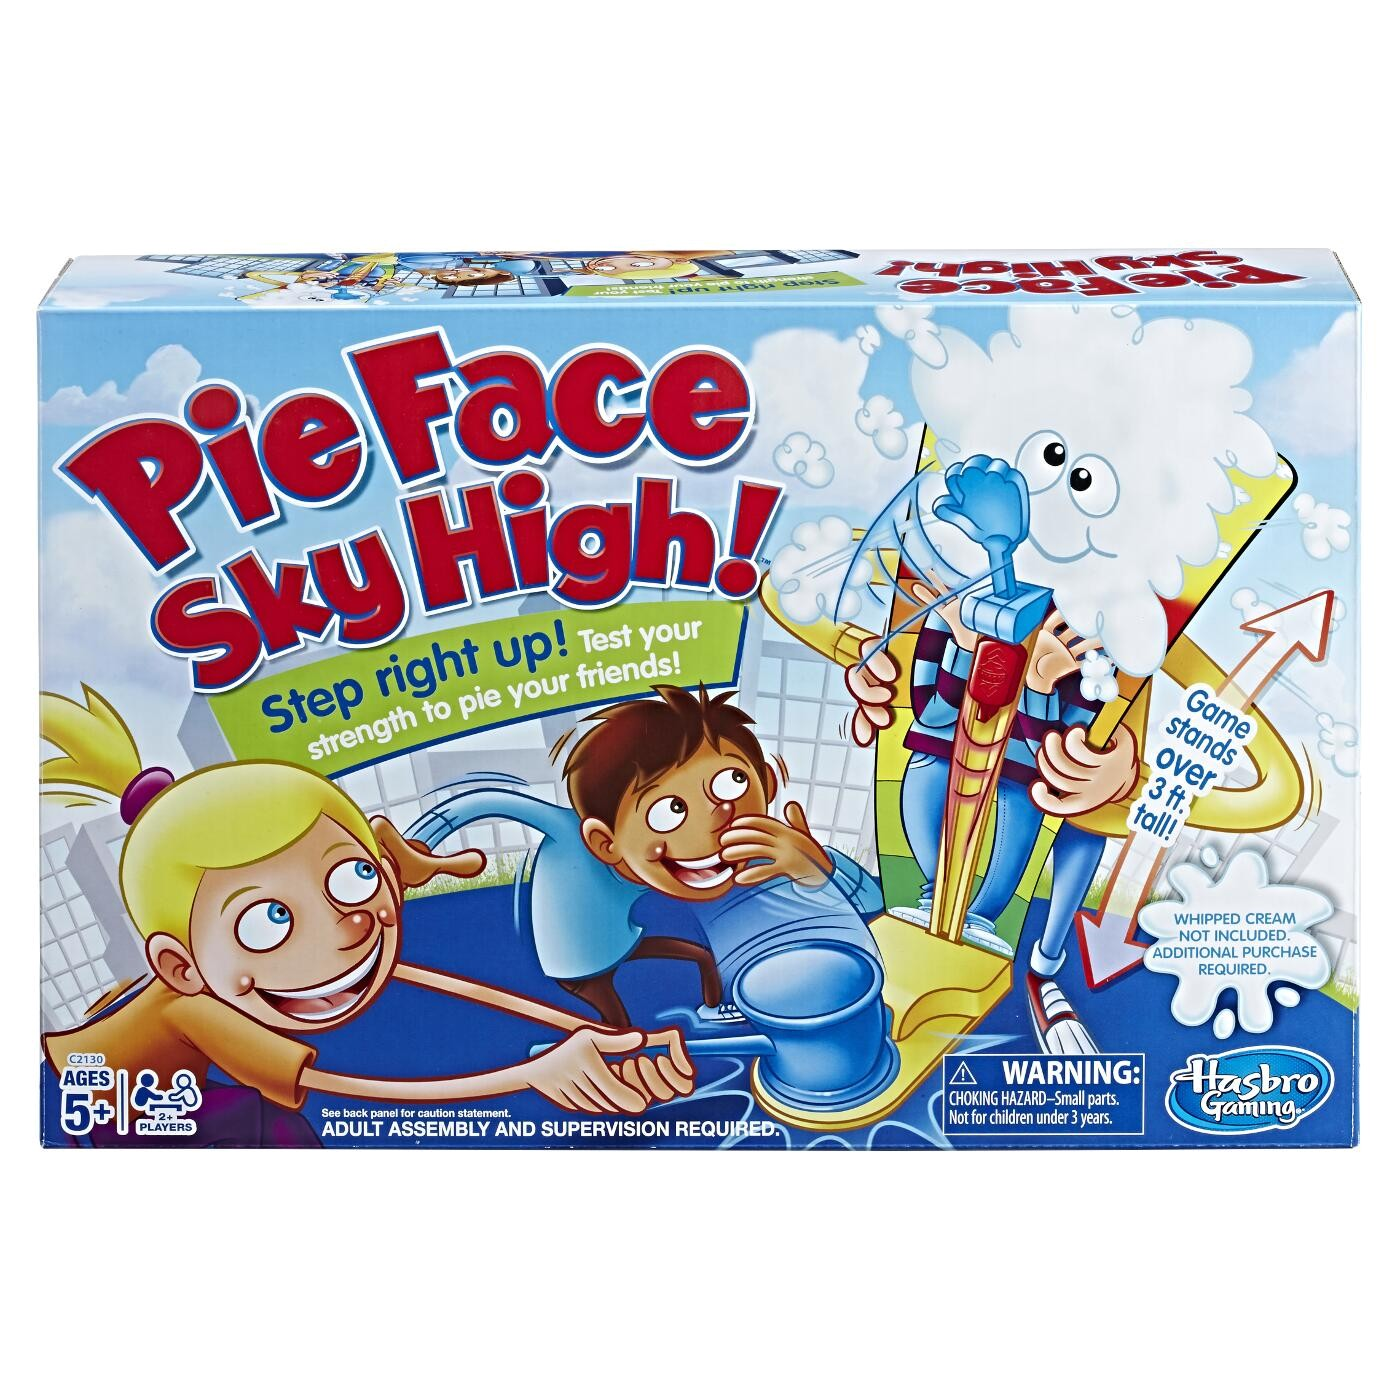 PIE FACE SKY HIGH